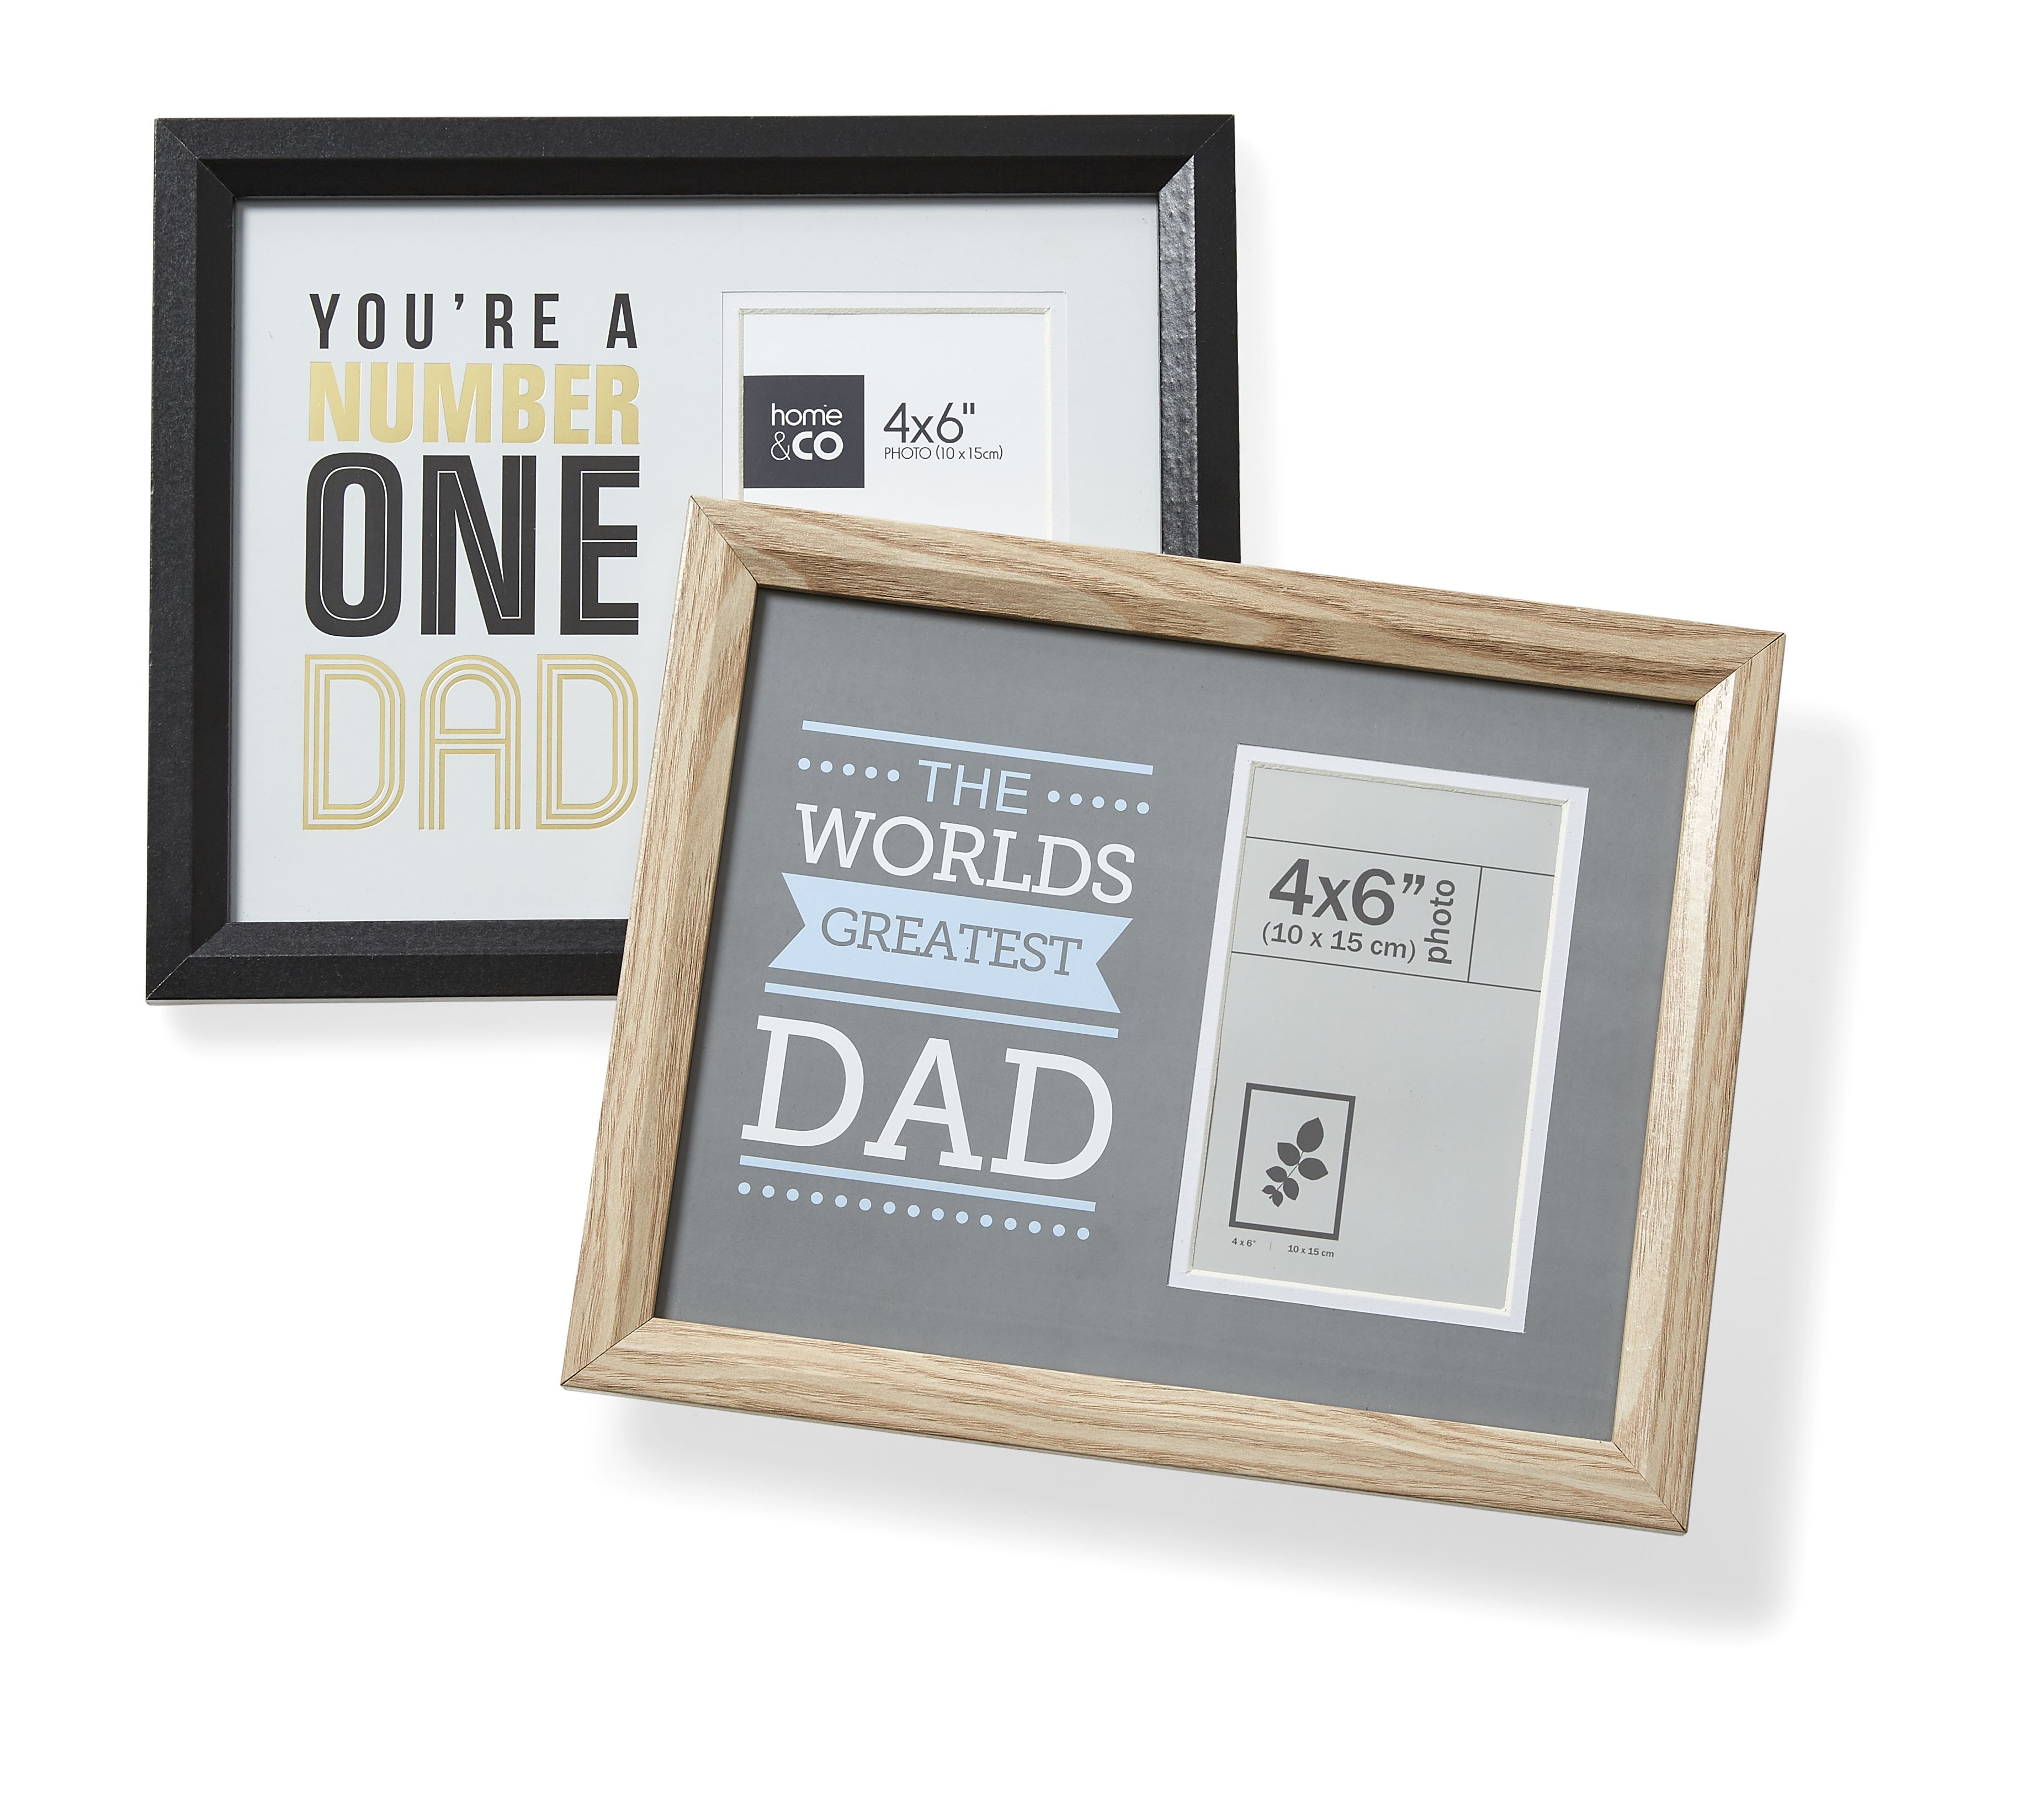 Kmart You're a Number One Dad or The World's Greatest Dad 4in by 6in Frame, RRP$5.00